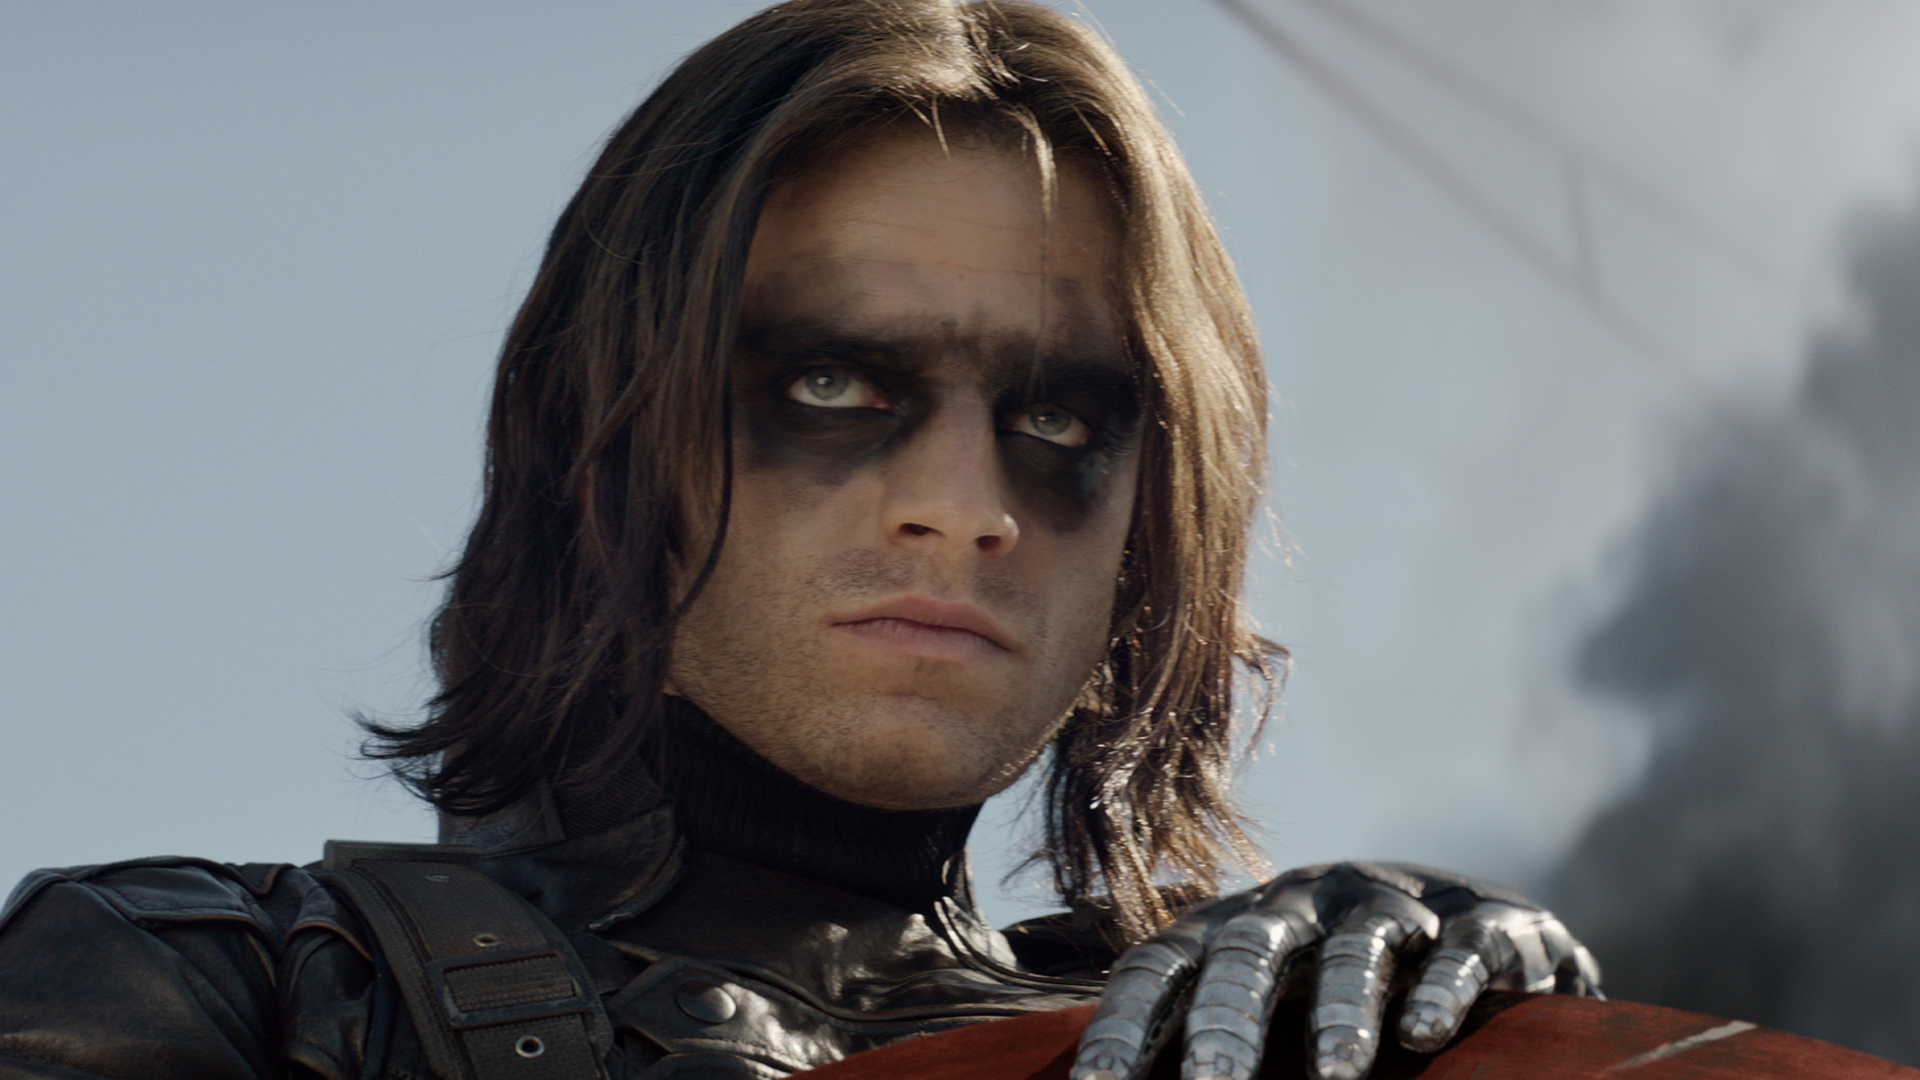 bucky barnes  winter soldier  images winter soldier hd wallpaper and background photos  37159153